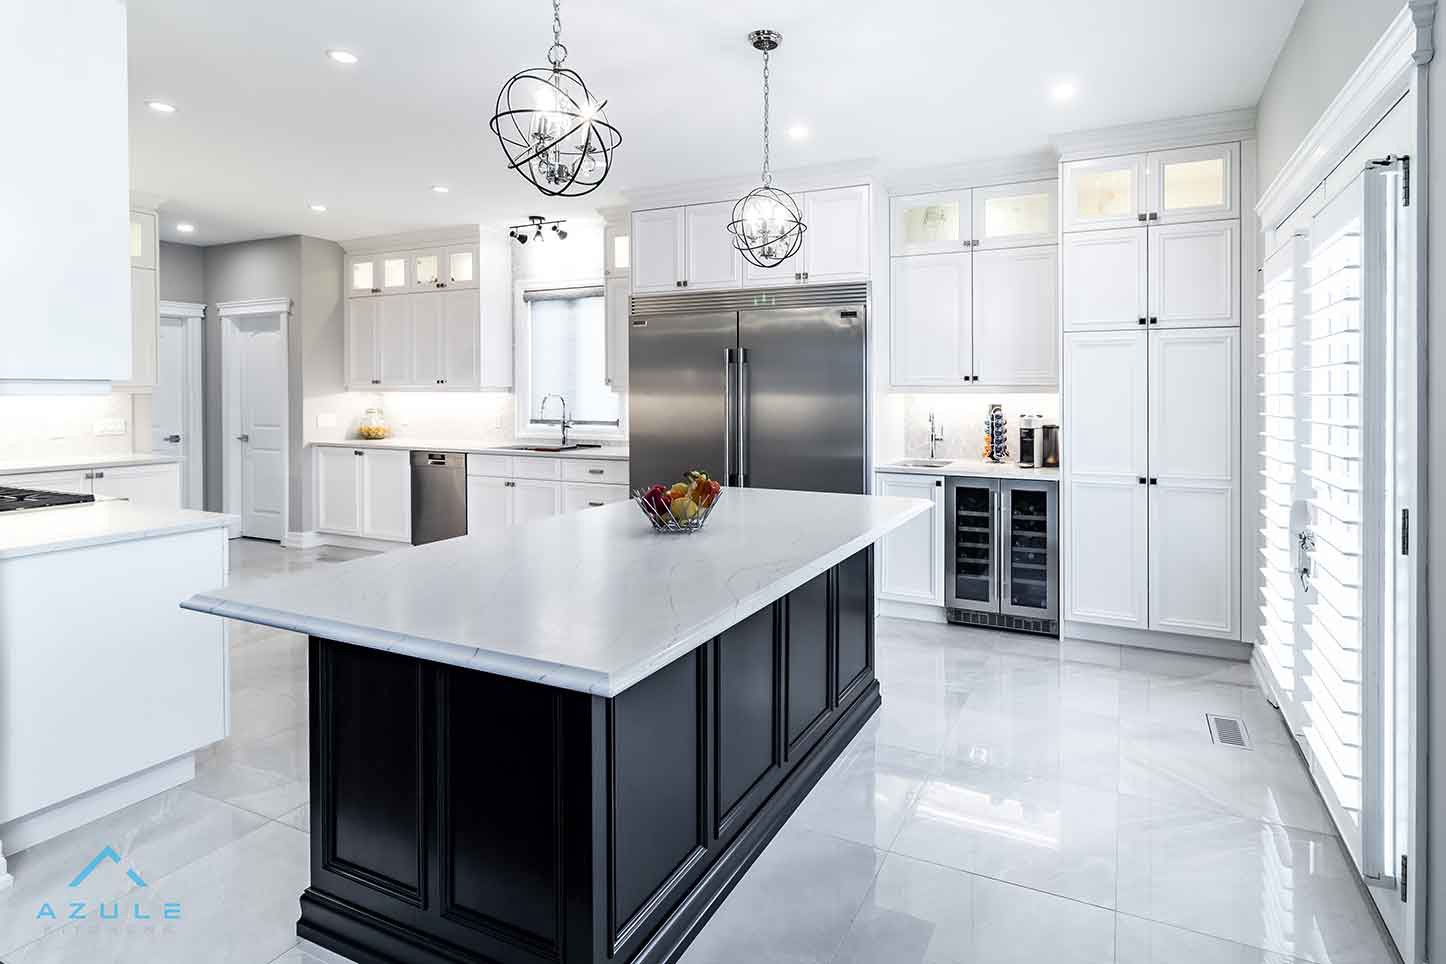 Azule Kitchens Tips To Enhance The Look Of Your Kitchen In Cost